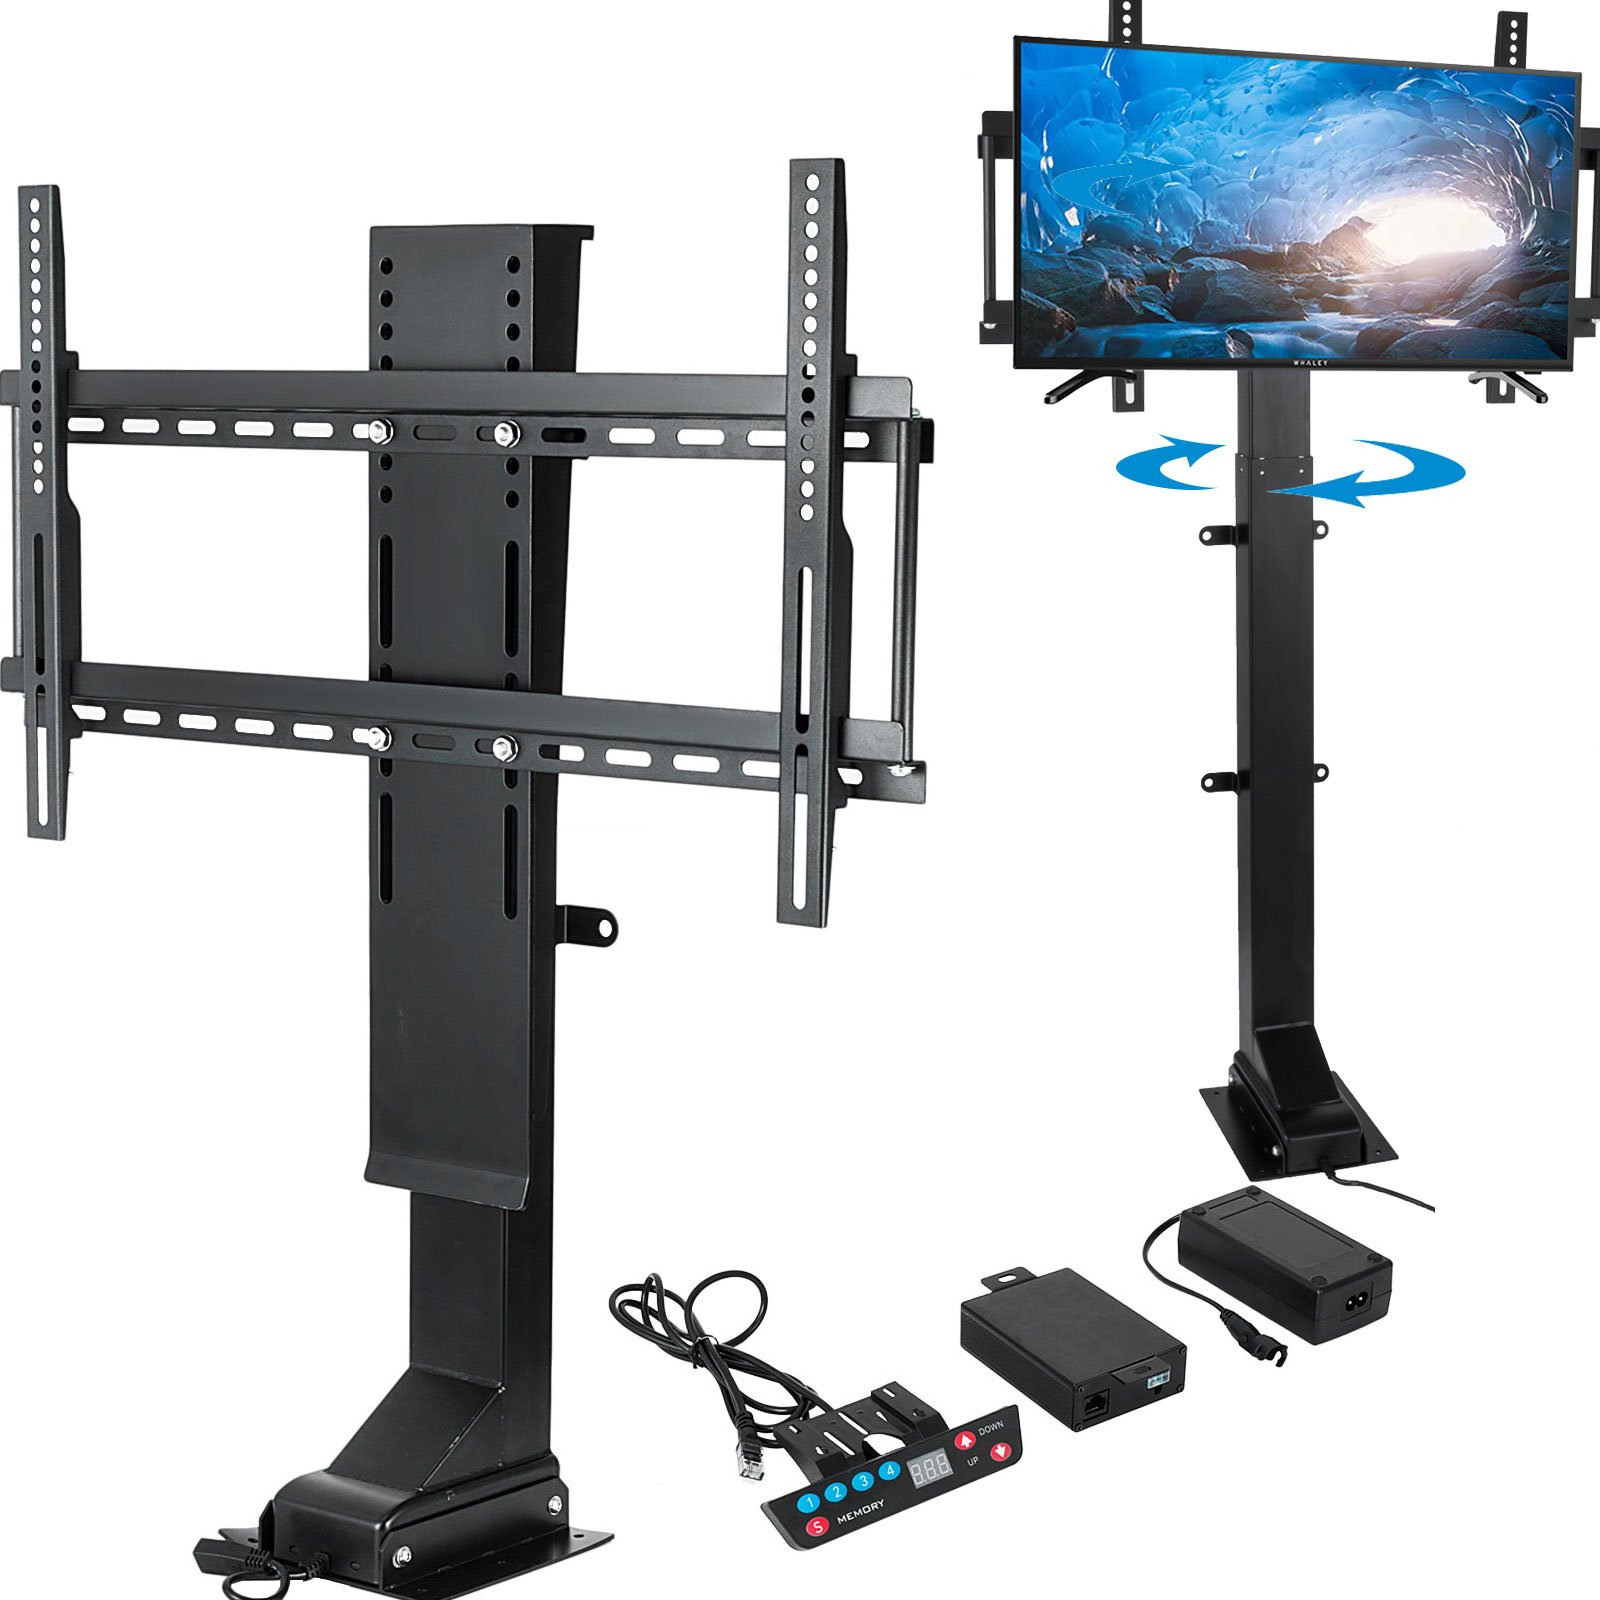 Mophorn TV Lift Motorized 32''-70''Adjustable TV Lift Mechanism 120 Degree Rotate with Remote Controller for Plasma LCD LED TV and Monitors